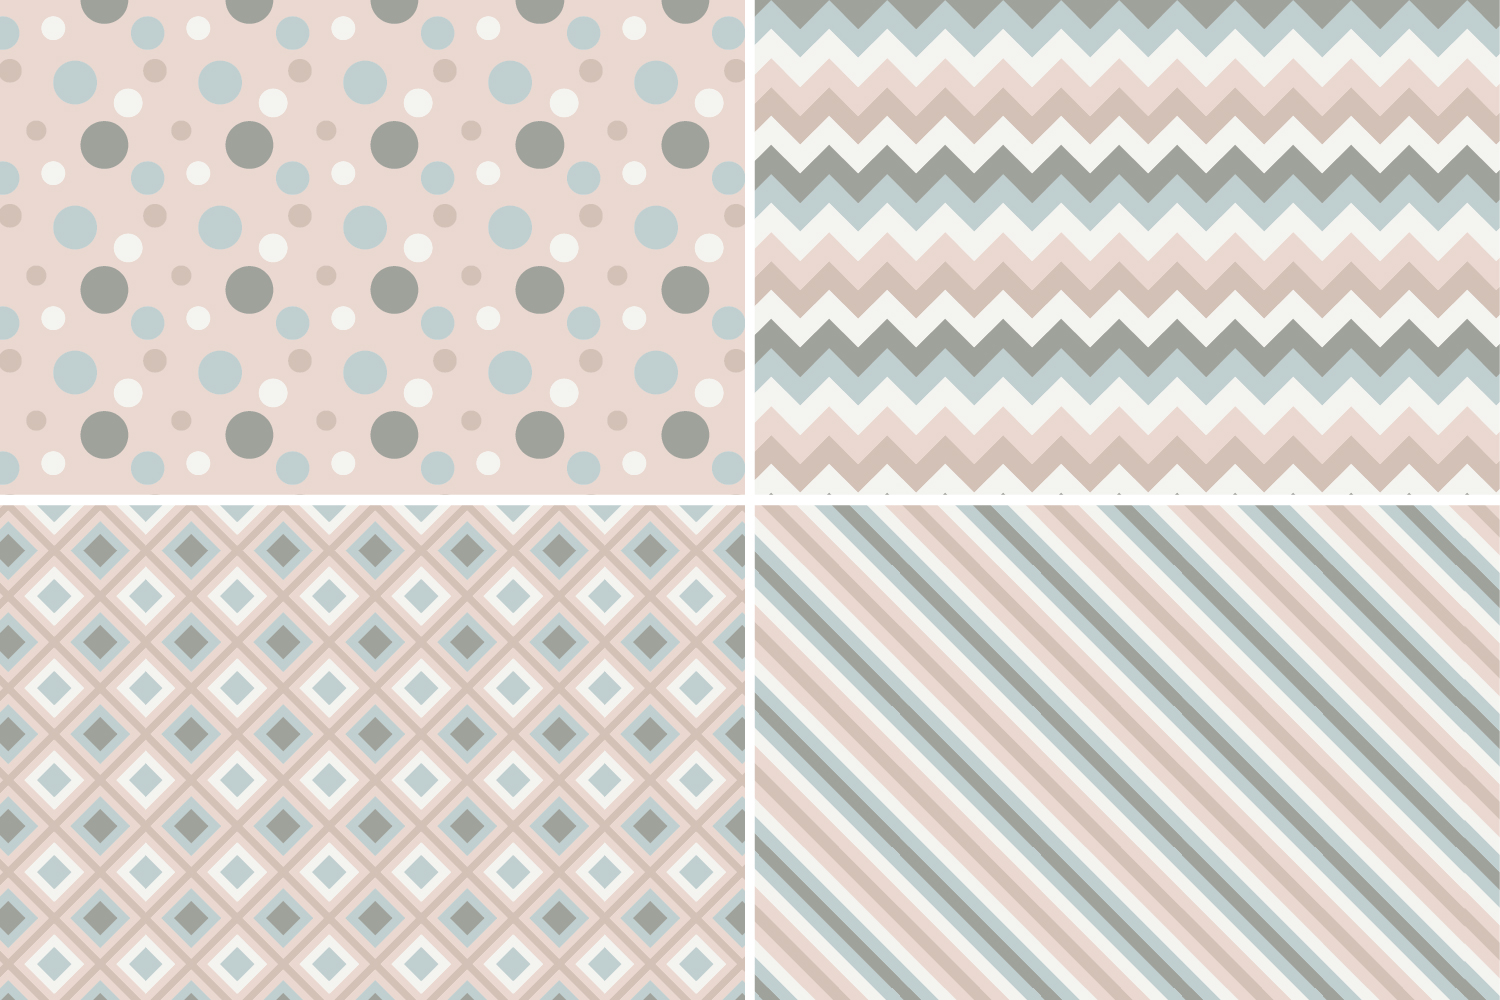 8 Seamless Retro Modern Patterns - Pink, Ivory & Green example image 7